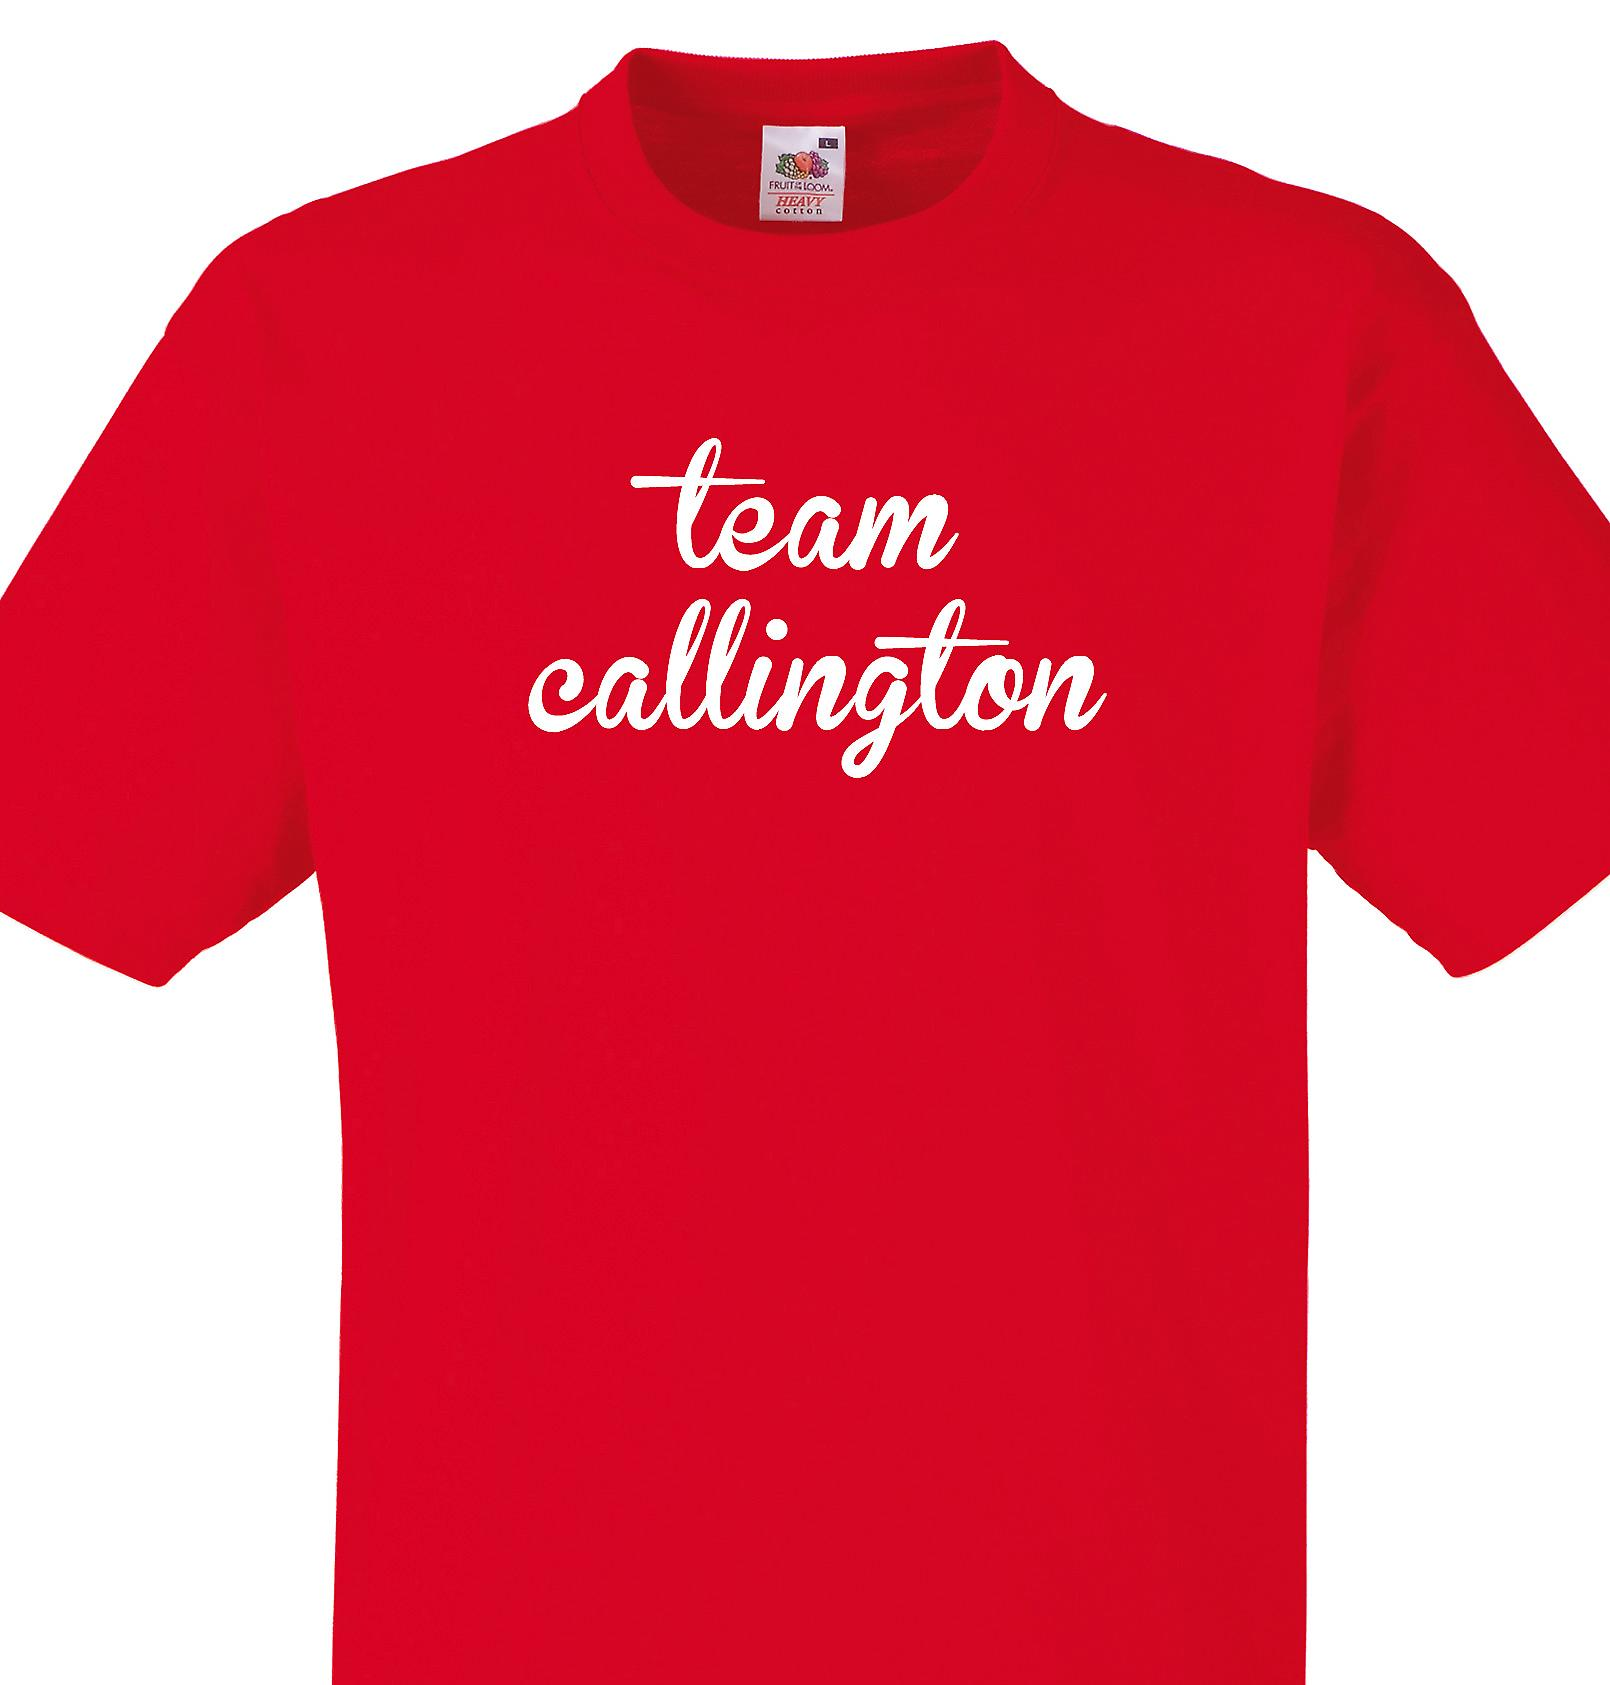 Team Callington Red T shirt